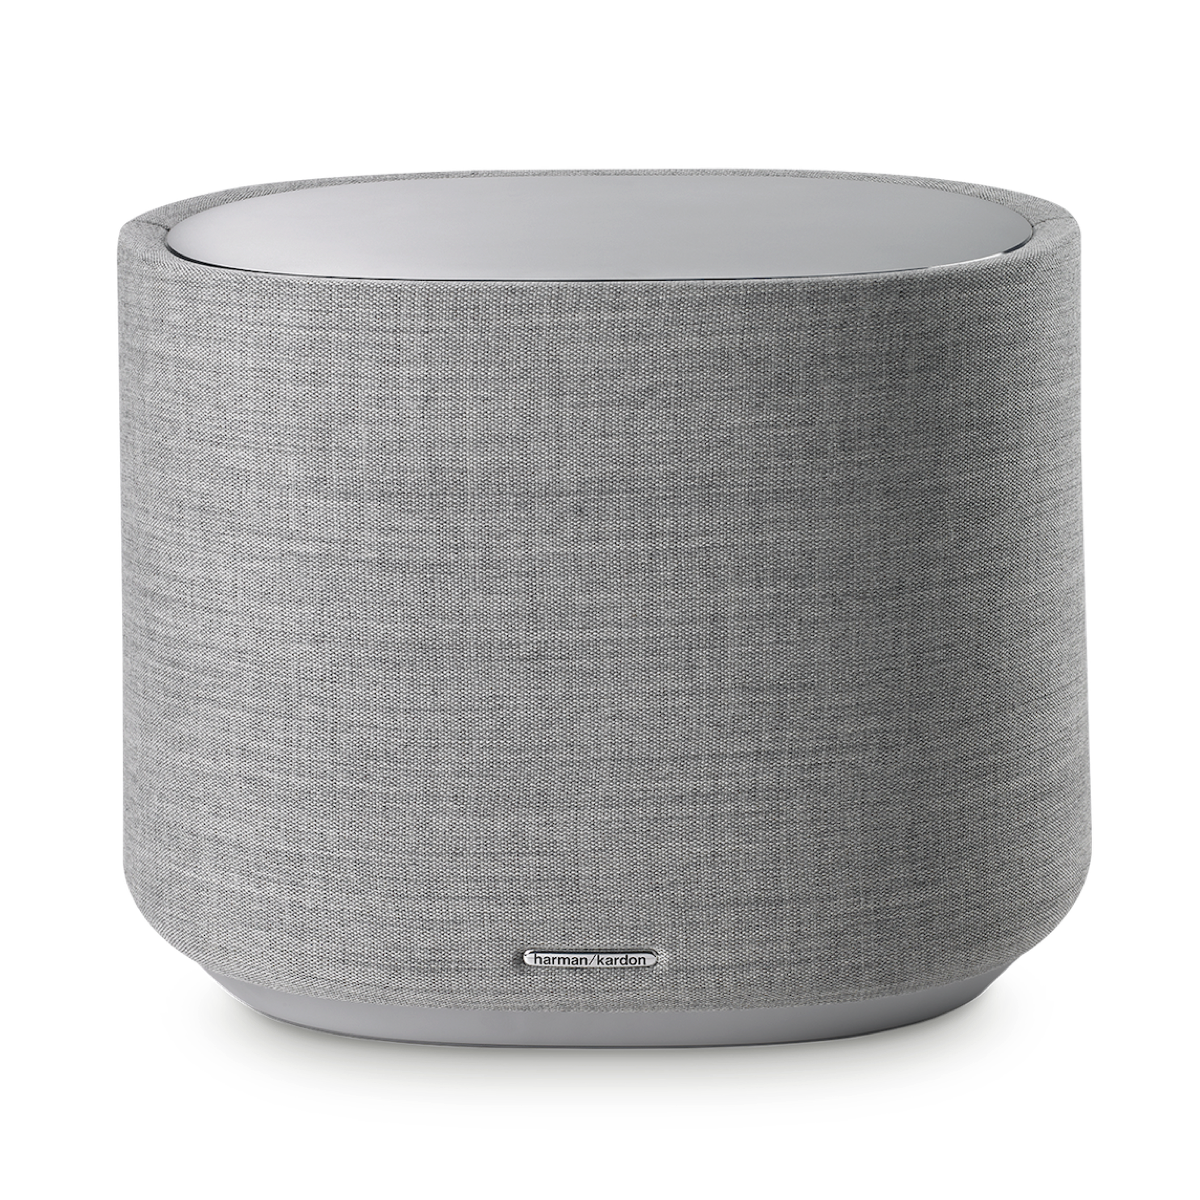 Harman Kardon Citation Subwoofer, Harman Kardon, Subwoofer - Auratech LLC